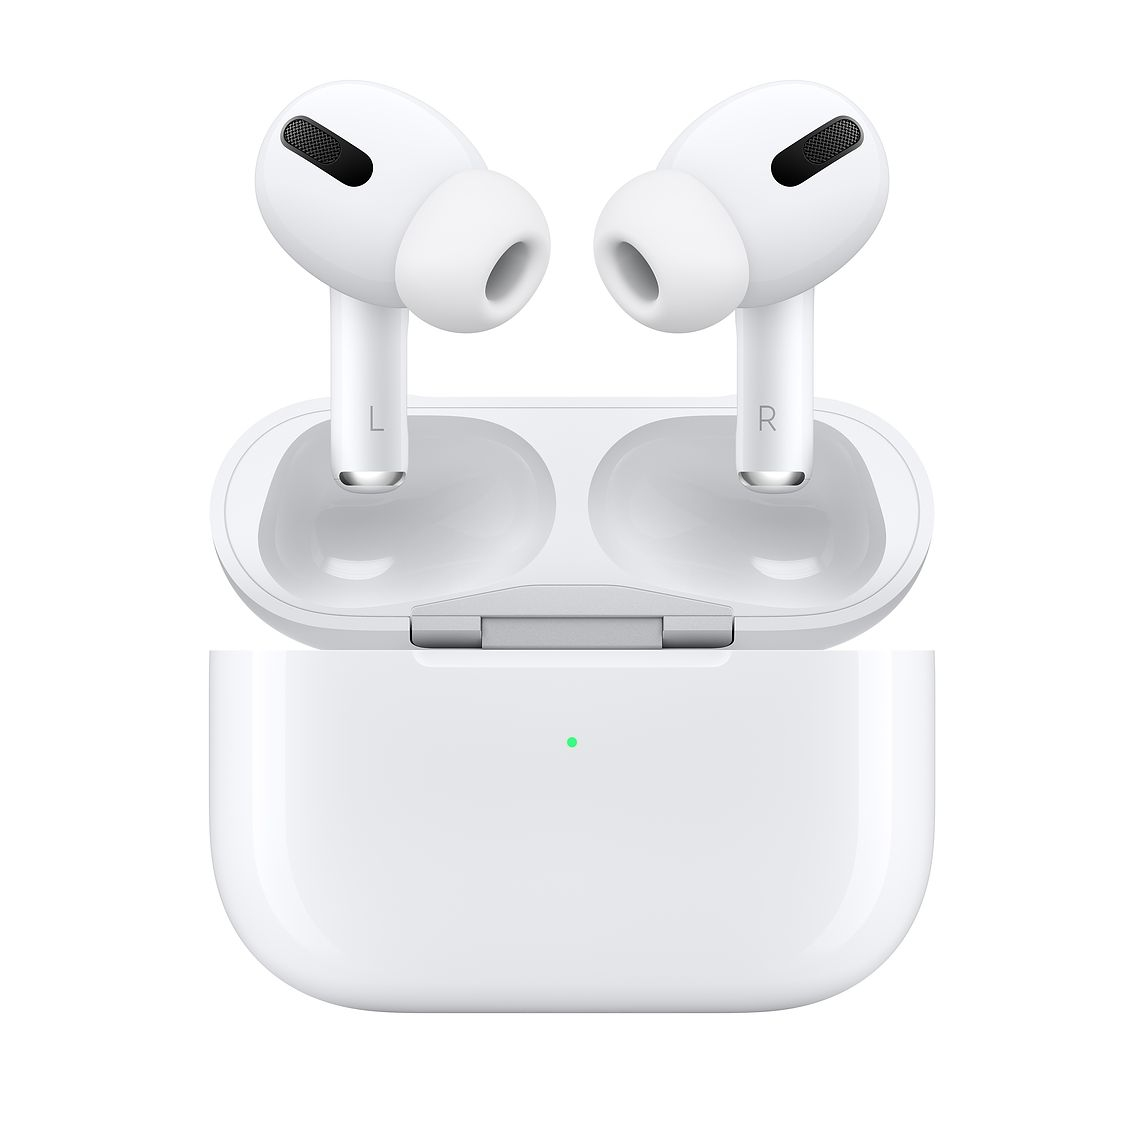 Original Apple Airpods Pro [100% Authentic] MWP22ZA/A